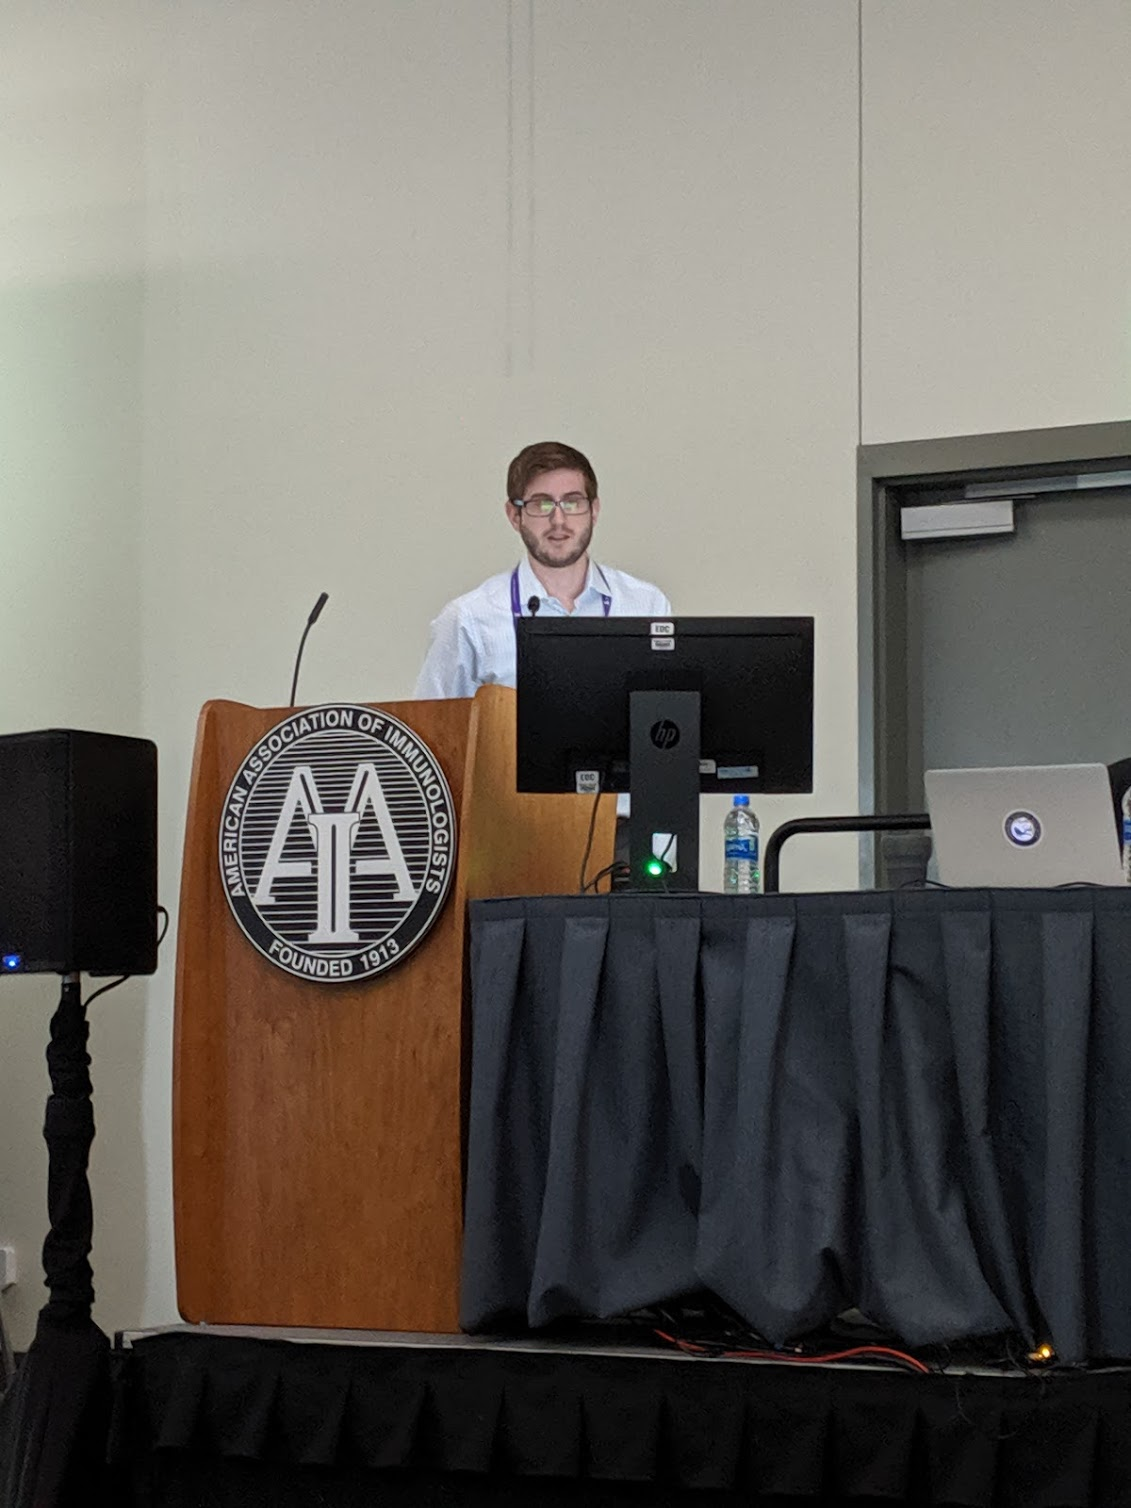 Giden at AAI2019